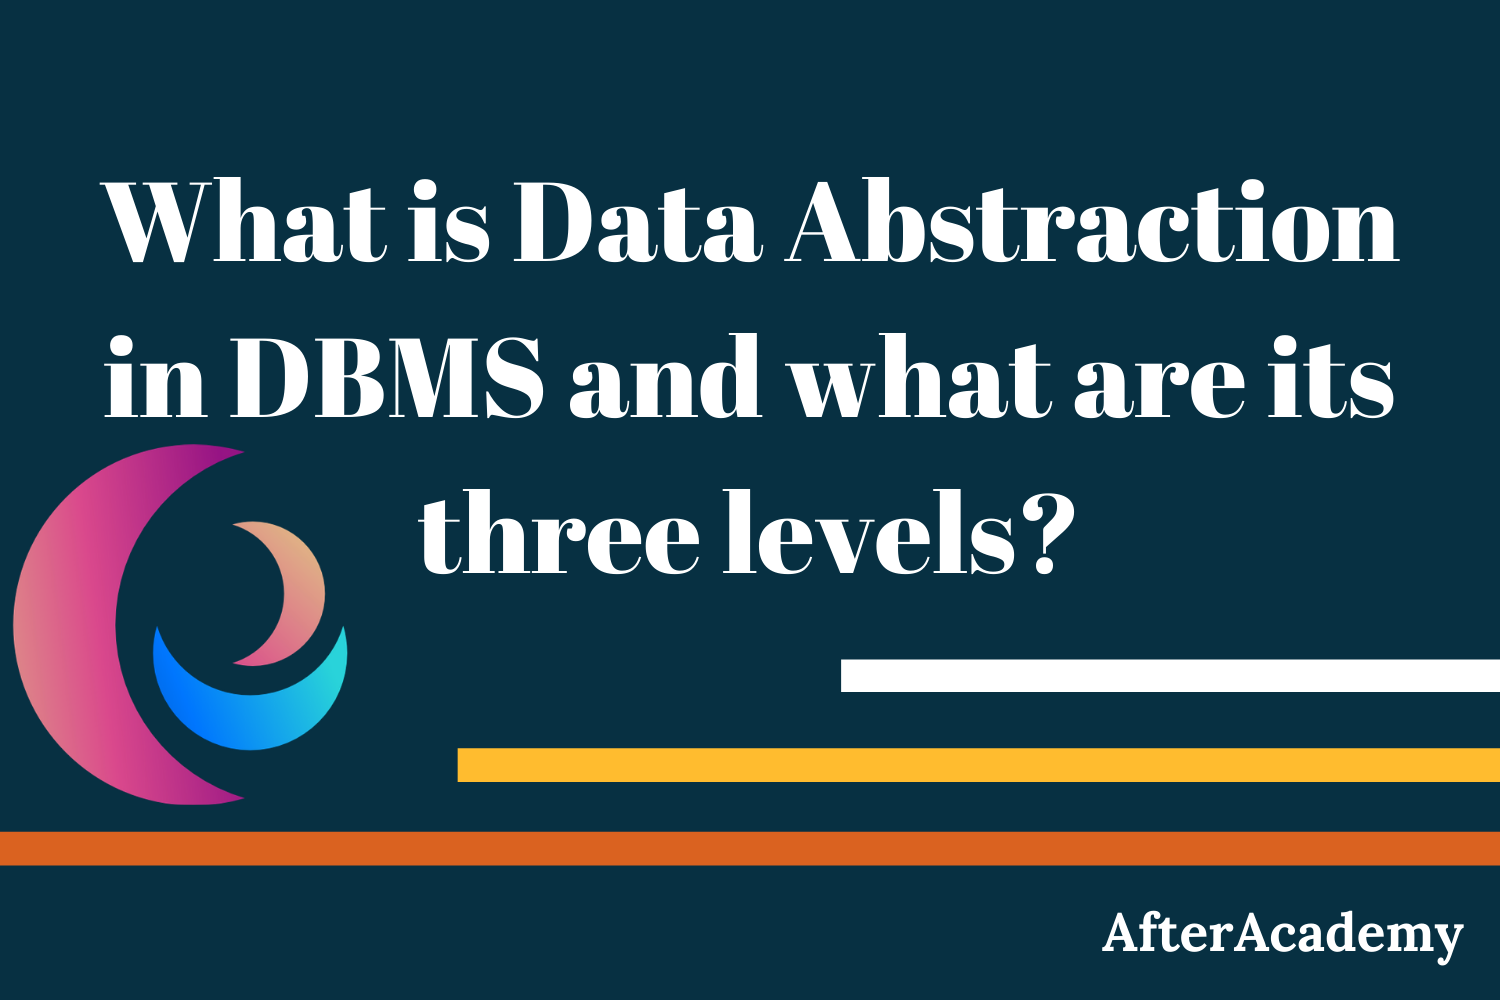 What is Data Abstraction in DBMS and what are its three levels?